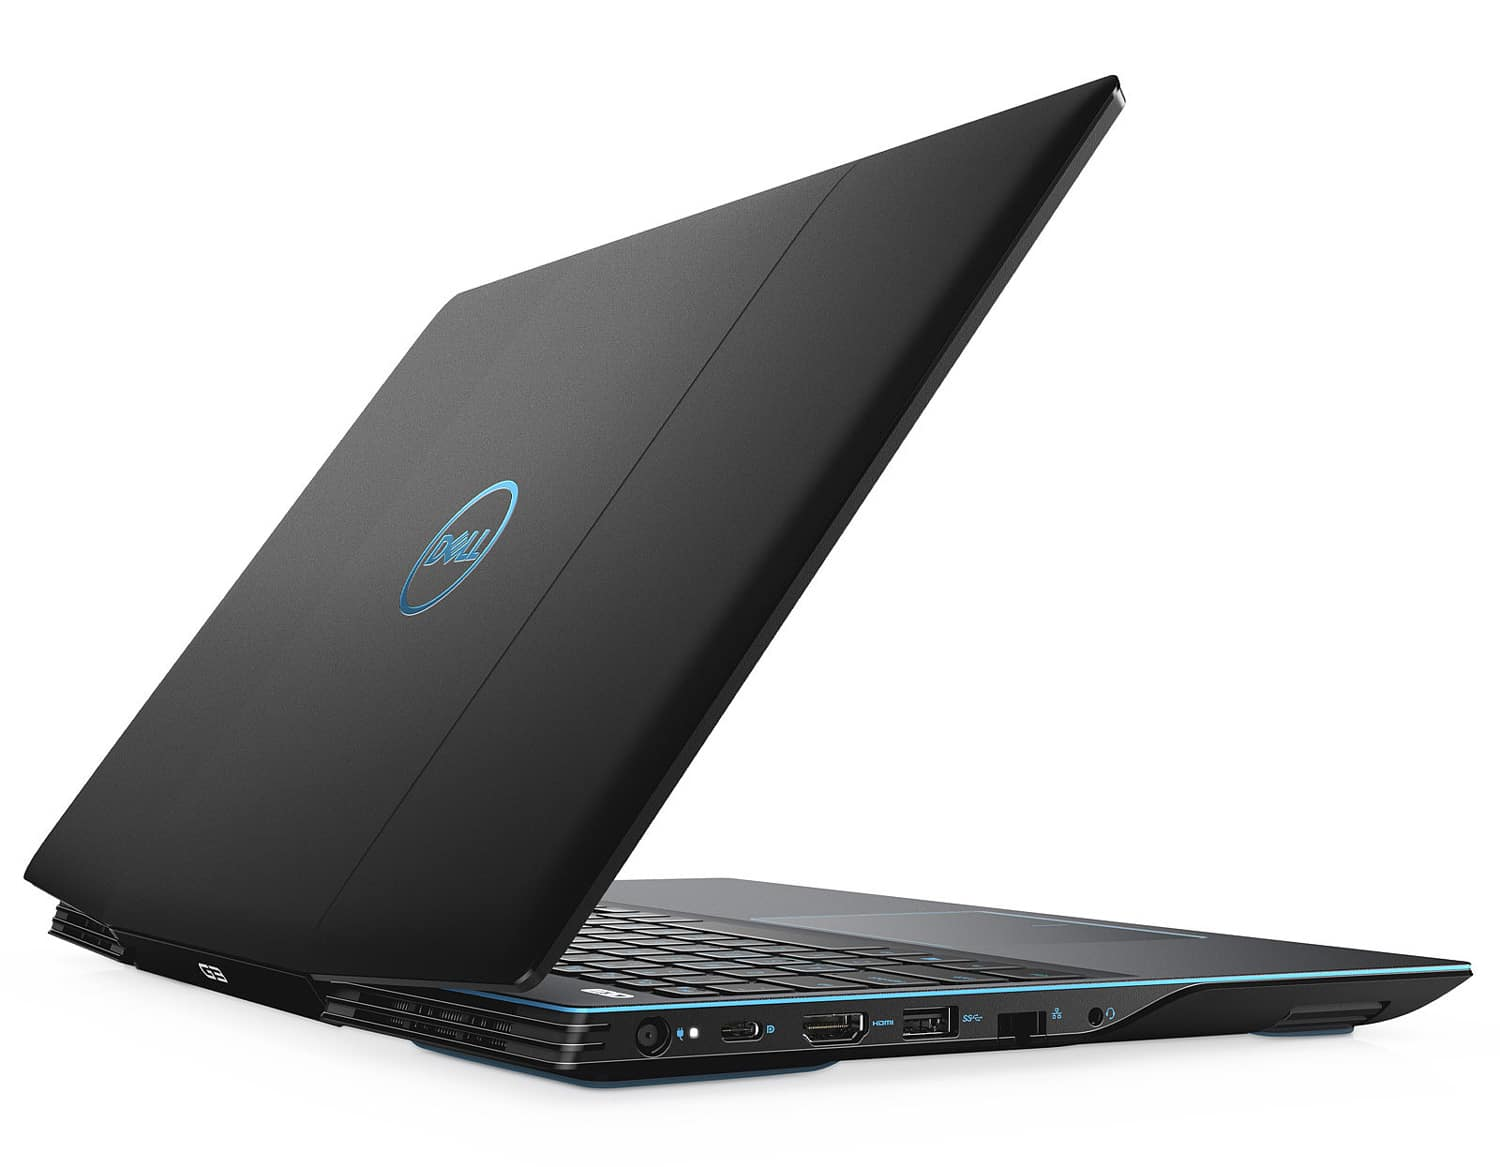 "Dell G3 3590, PC portable 15"" joueur rapide gros stockage (799€)"